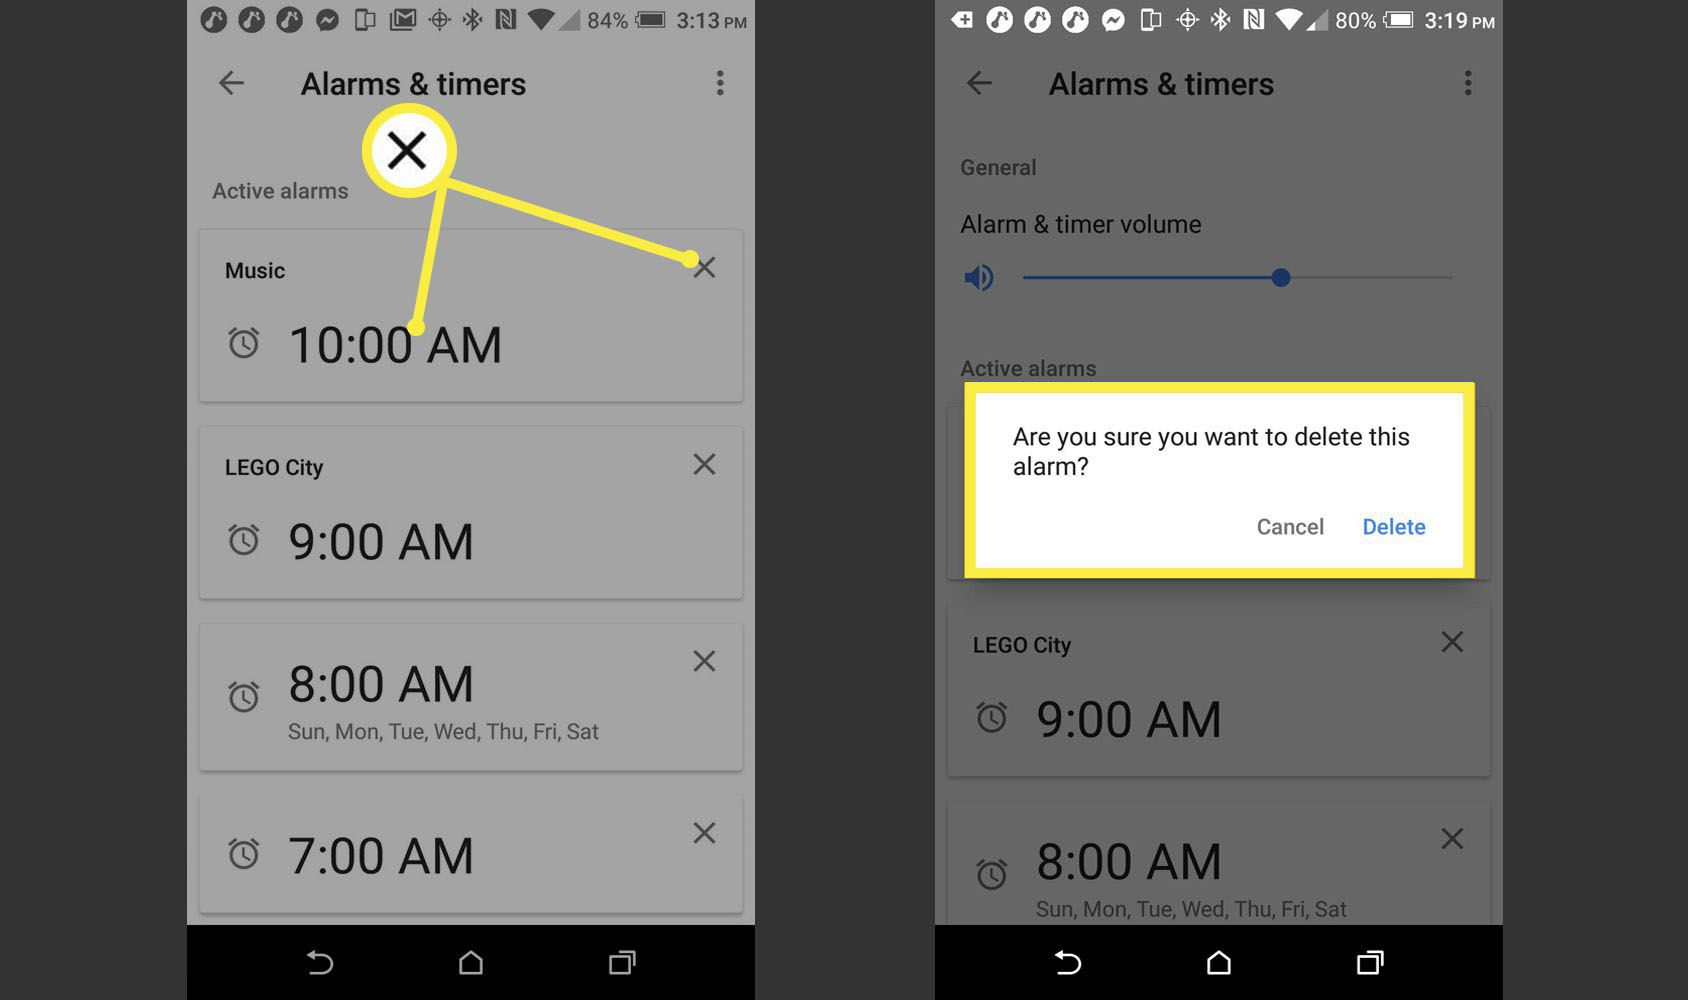 Alarms and Timers > Delete Alarm > Confirm Alarm Deletion.